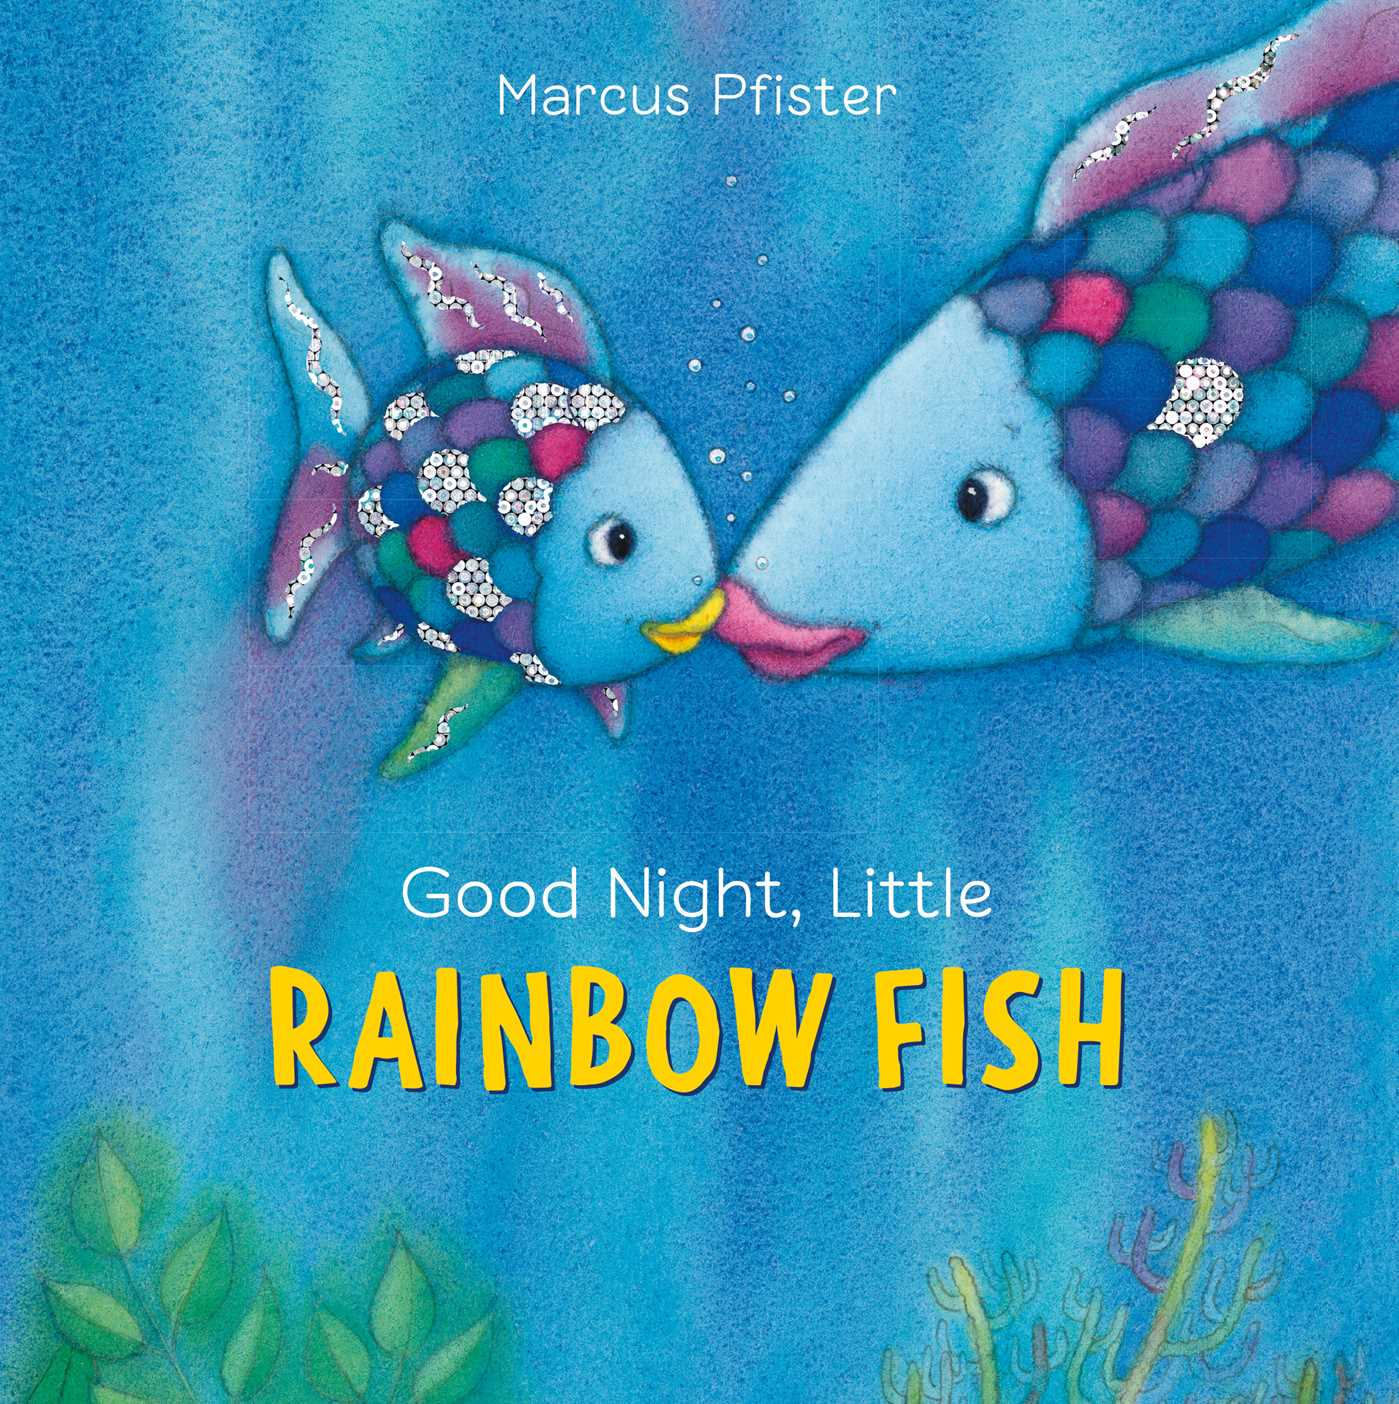 Good night little rainbow fish 9780735842854 hr